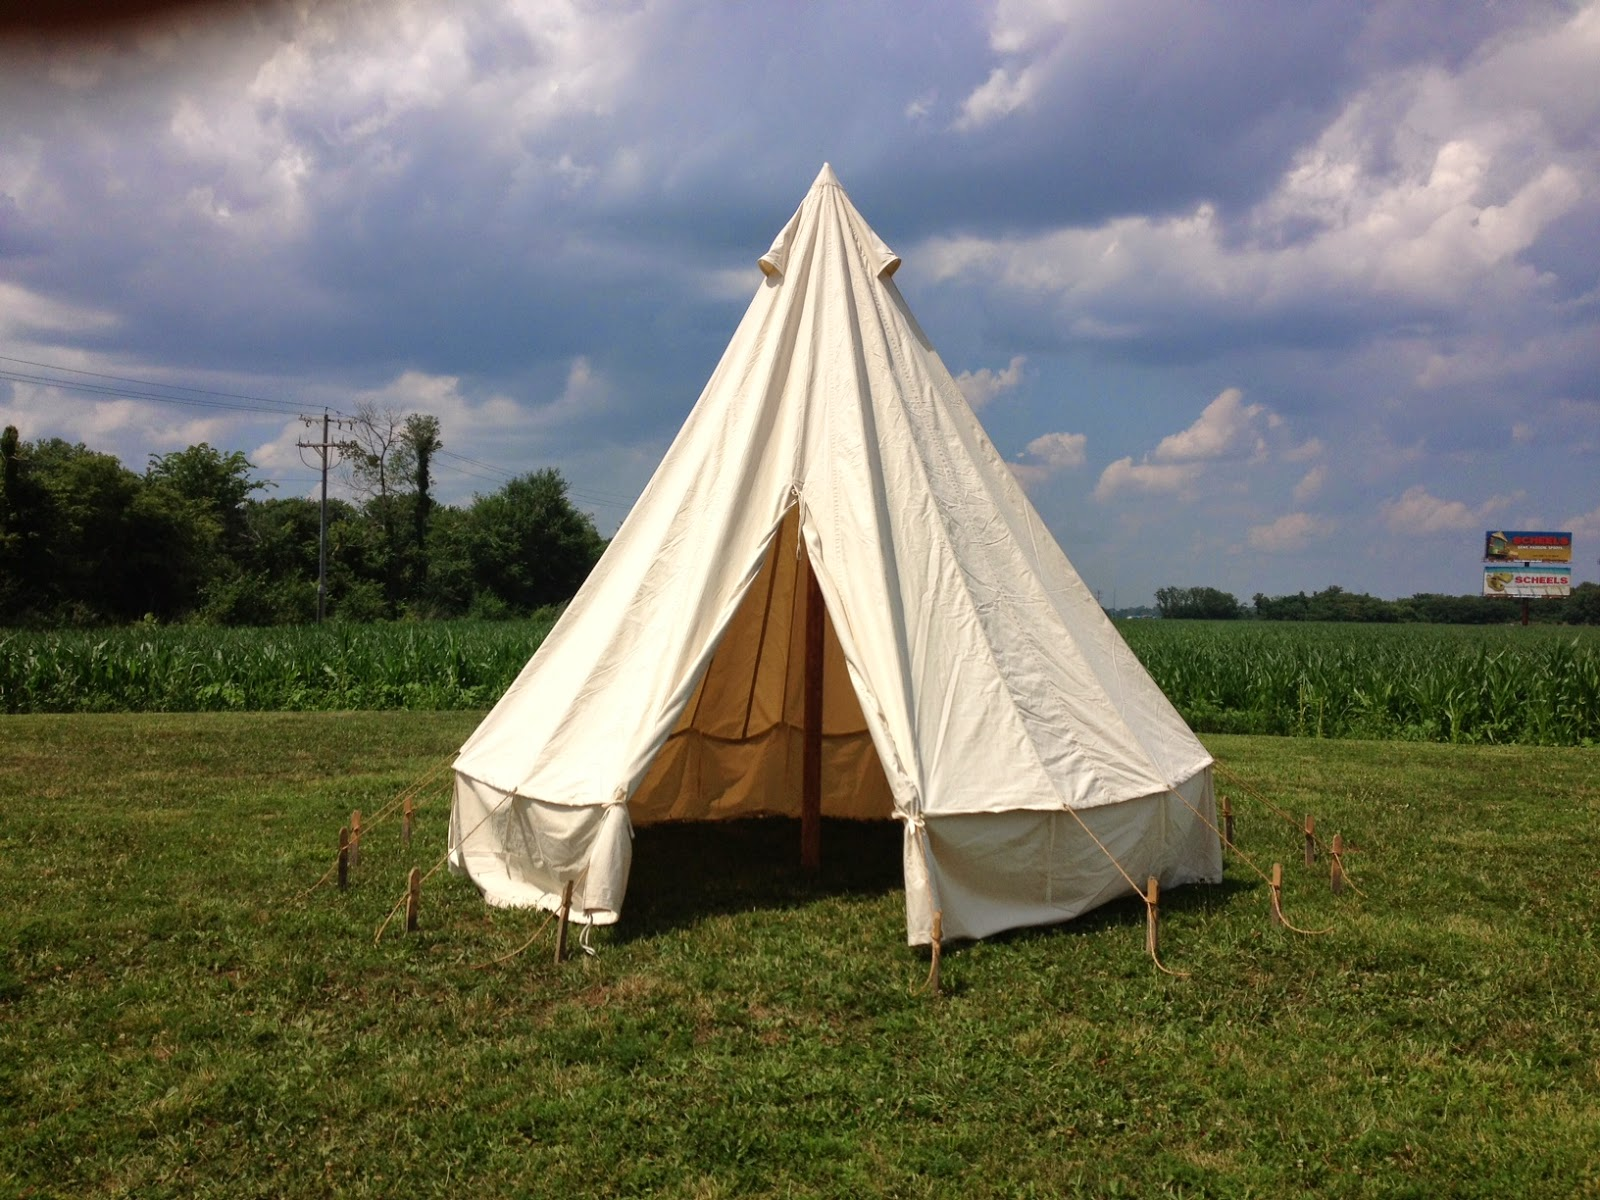 armbruster tent maker 1890s circus tent for whidbey. Black Bedroom Furniture Sets. Home Design Ideas